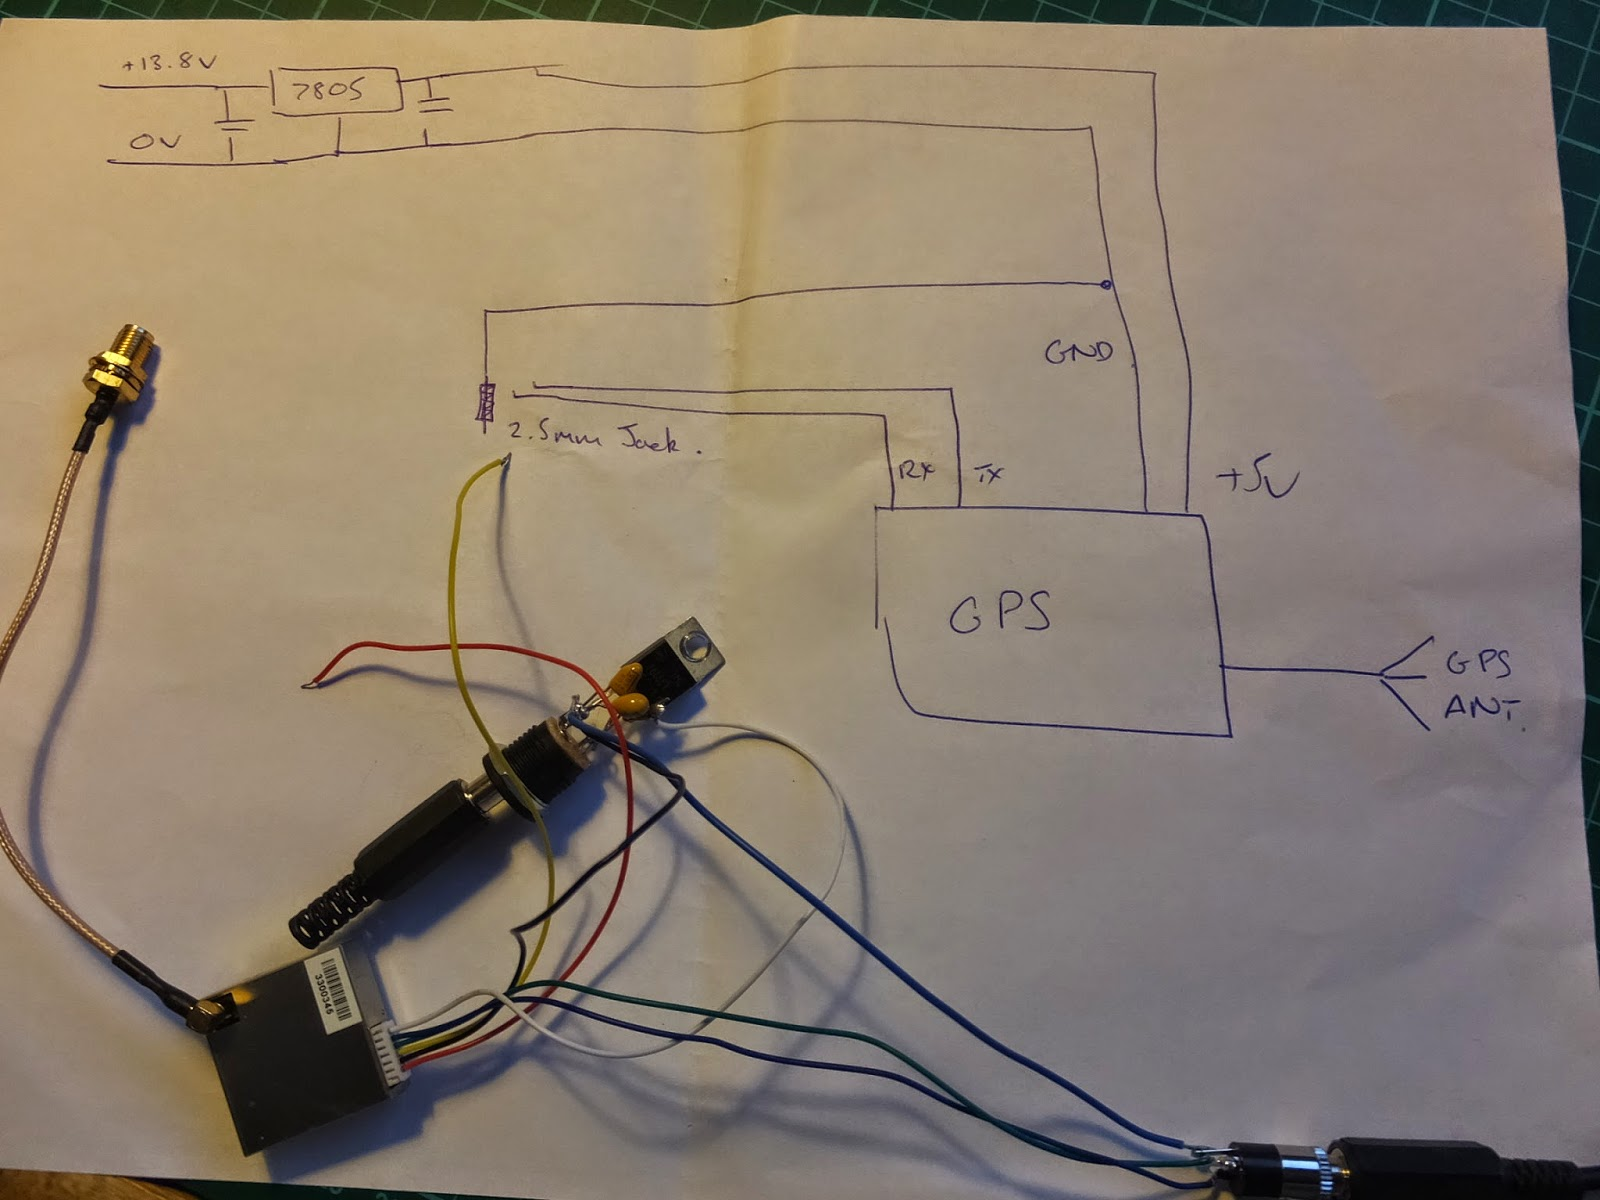 G0mgx In The Shack Signalink Usb Wiring Diagram Ill Connect It All Together Tomorrow And Report Back On What Happens